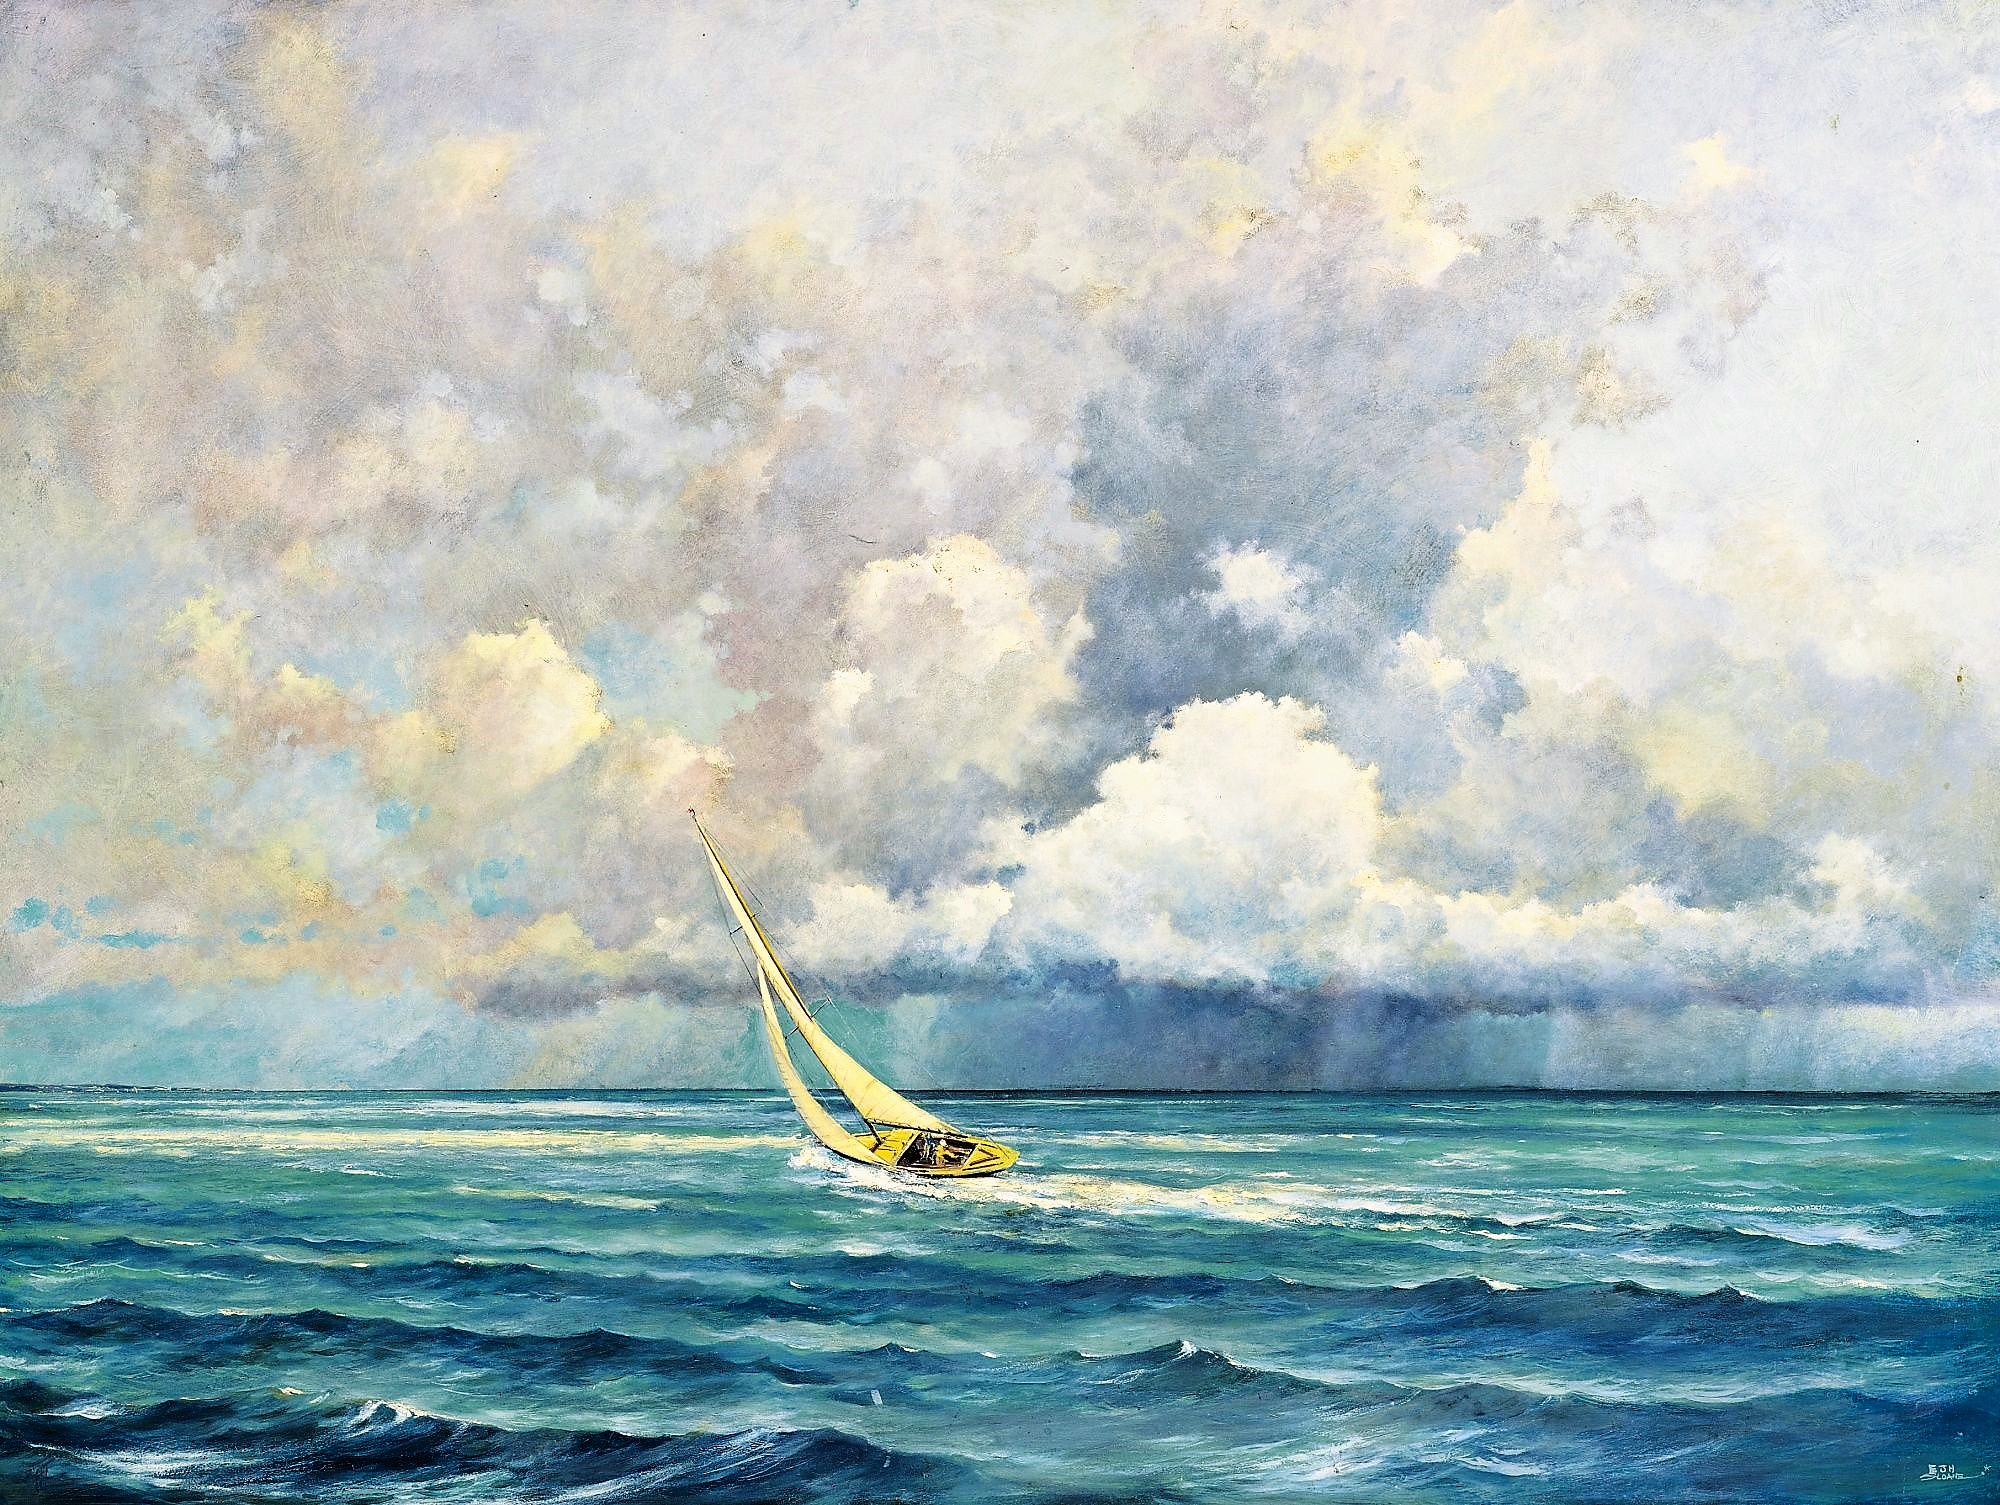 Ahead of the squall - Eric Sloane